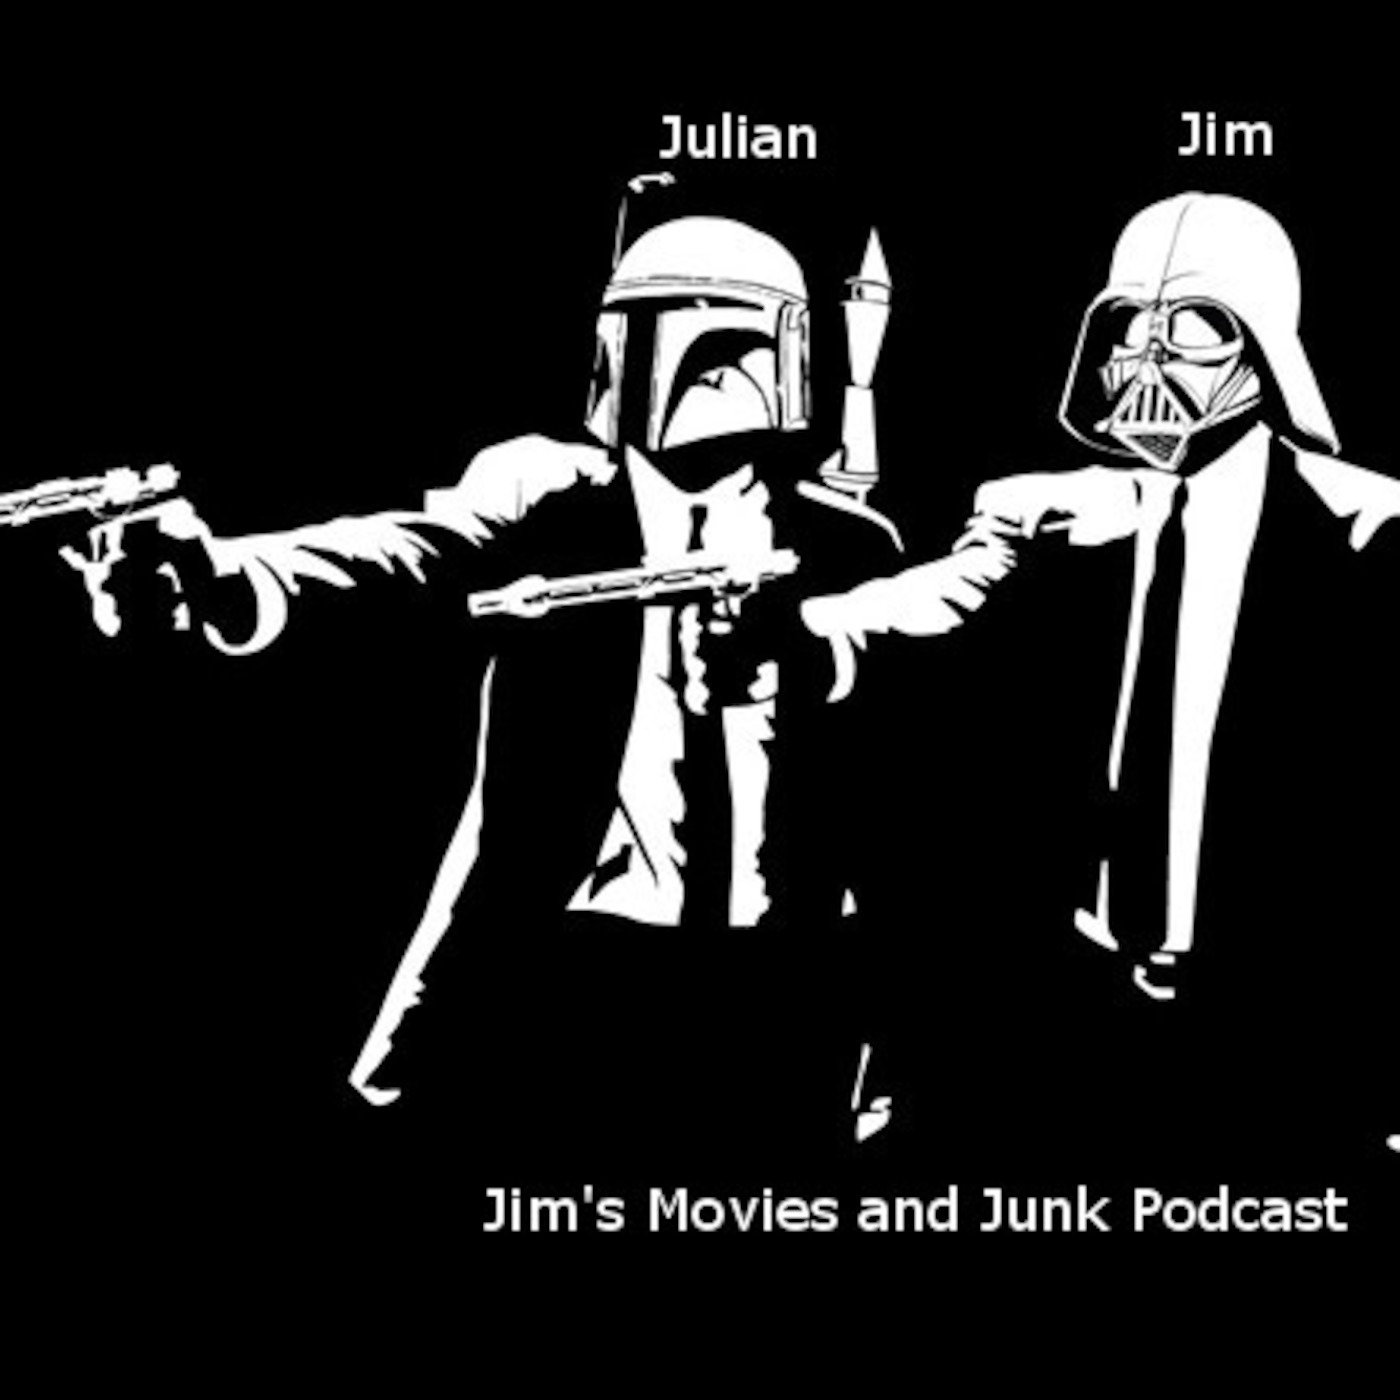 Jim's Movies and Junk